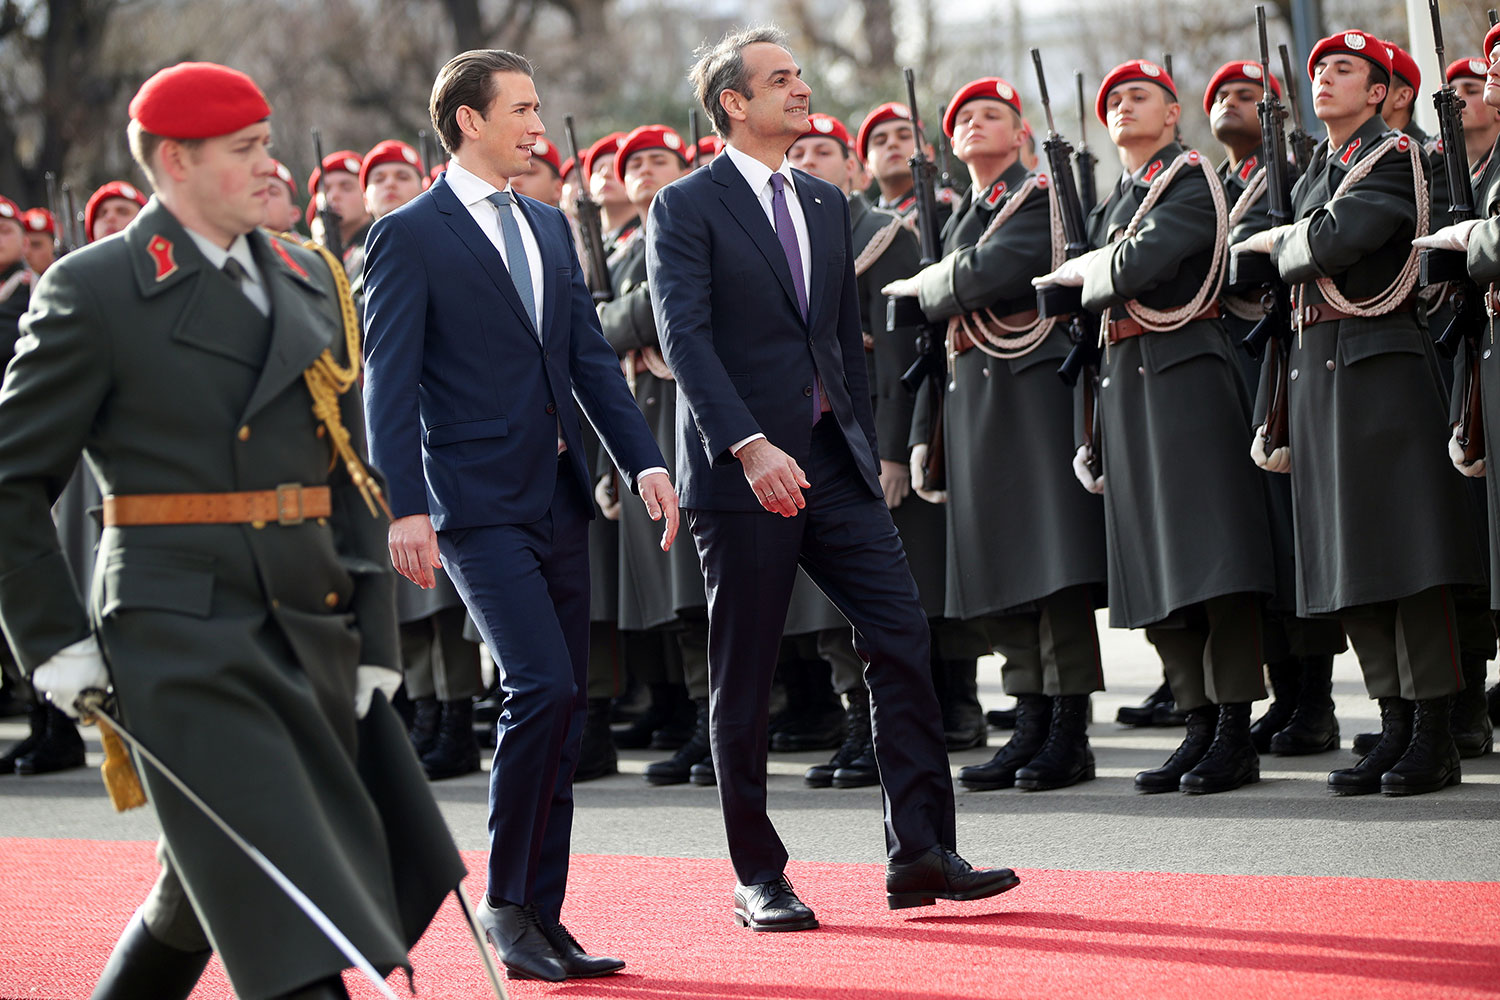 The photo shows the two leaders walking alongside a highly polished military guard.